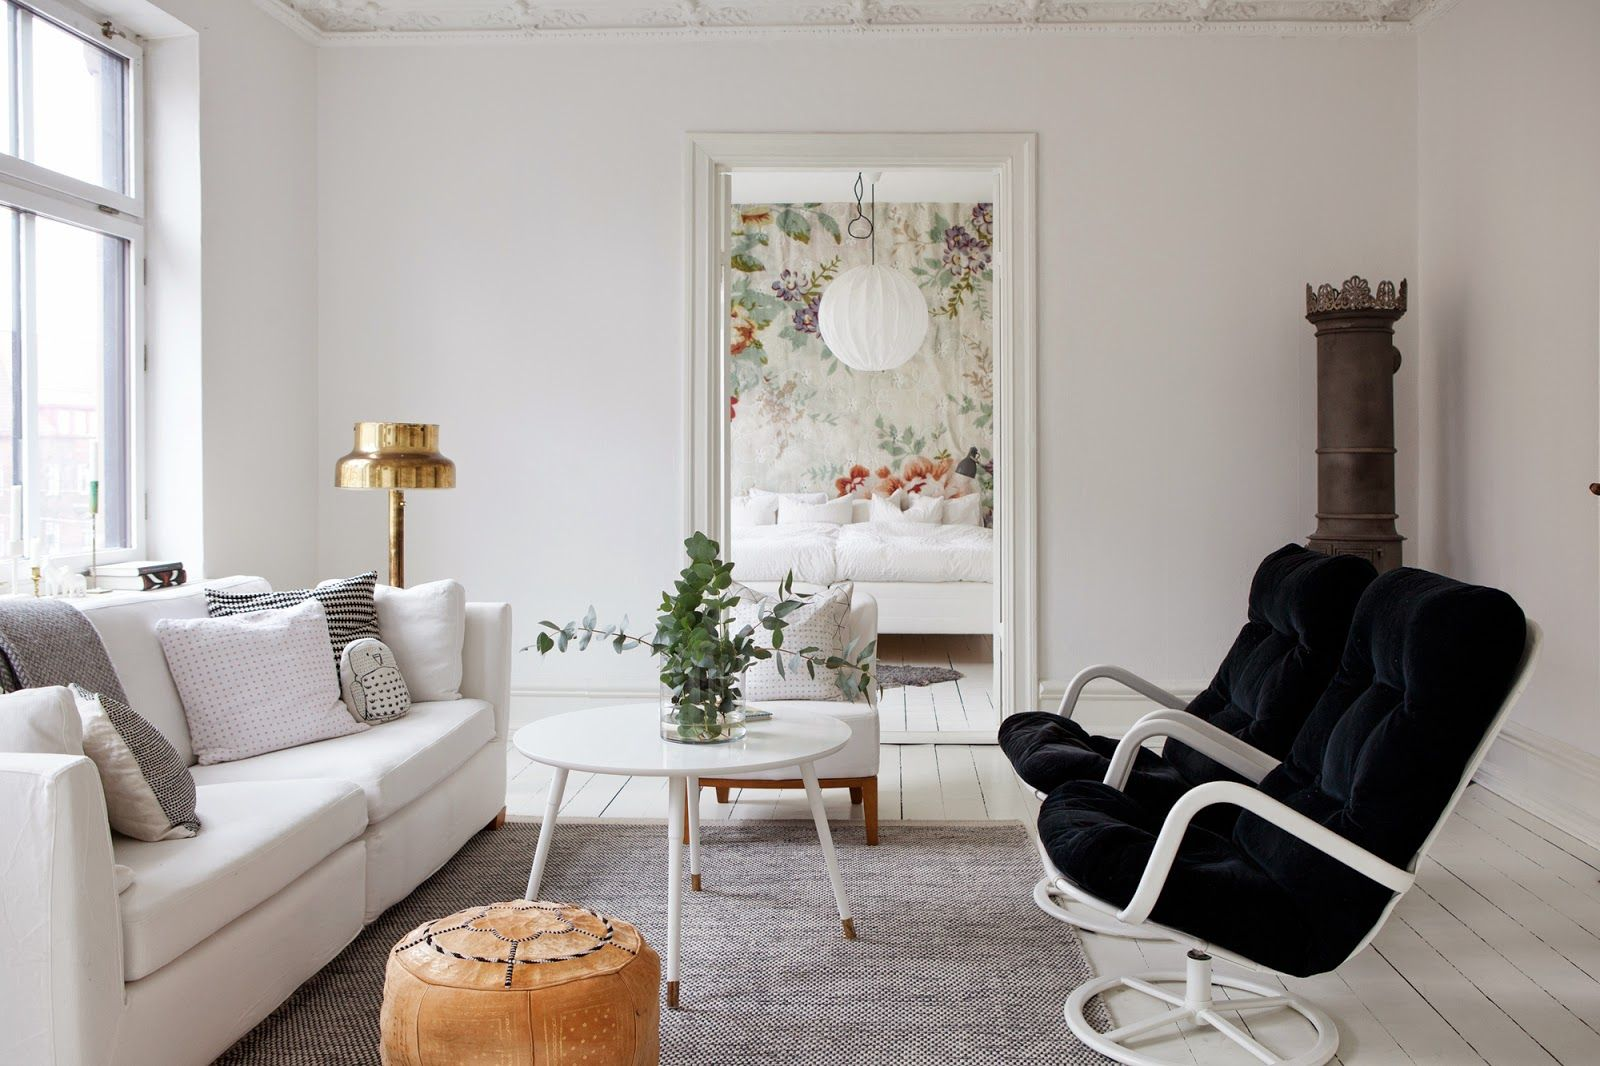 The perfect Swedish home Photo by Bolaget http://www.bo-laget.se/oversikt.php